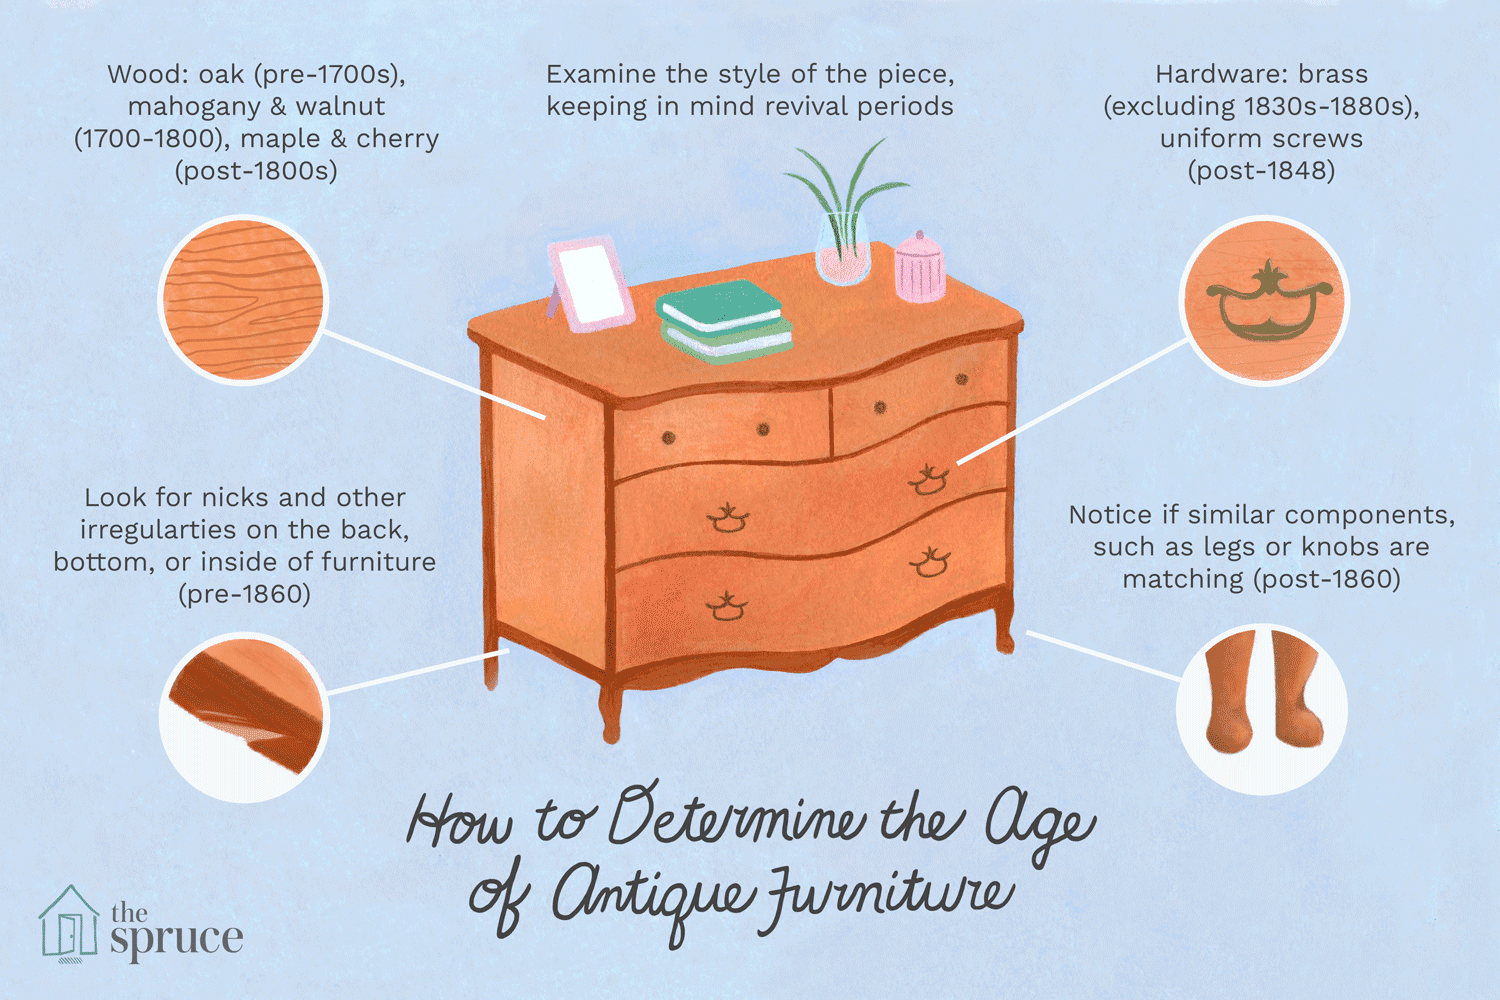 How To Date Antique Furniture